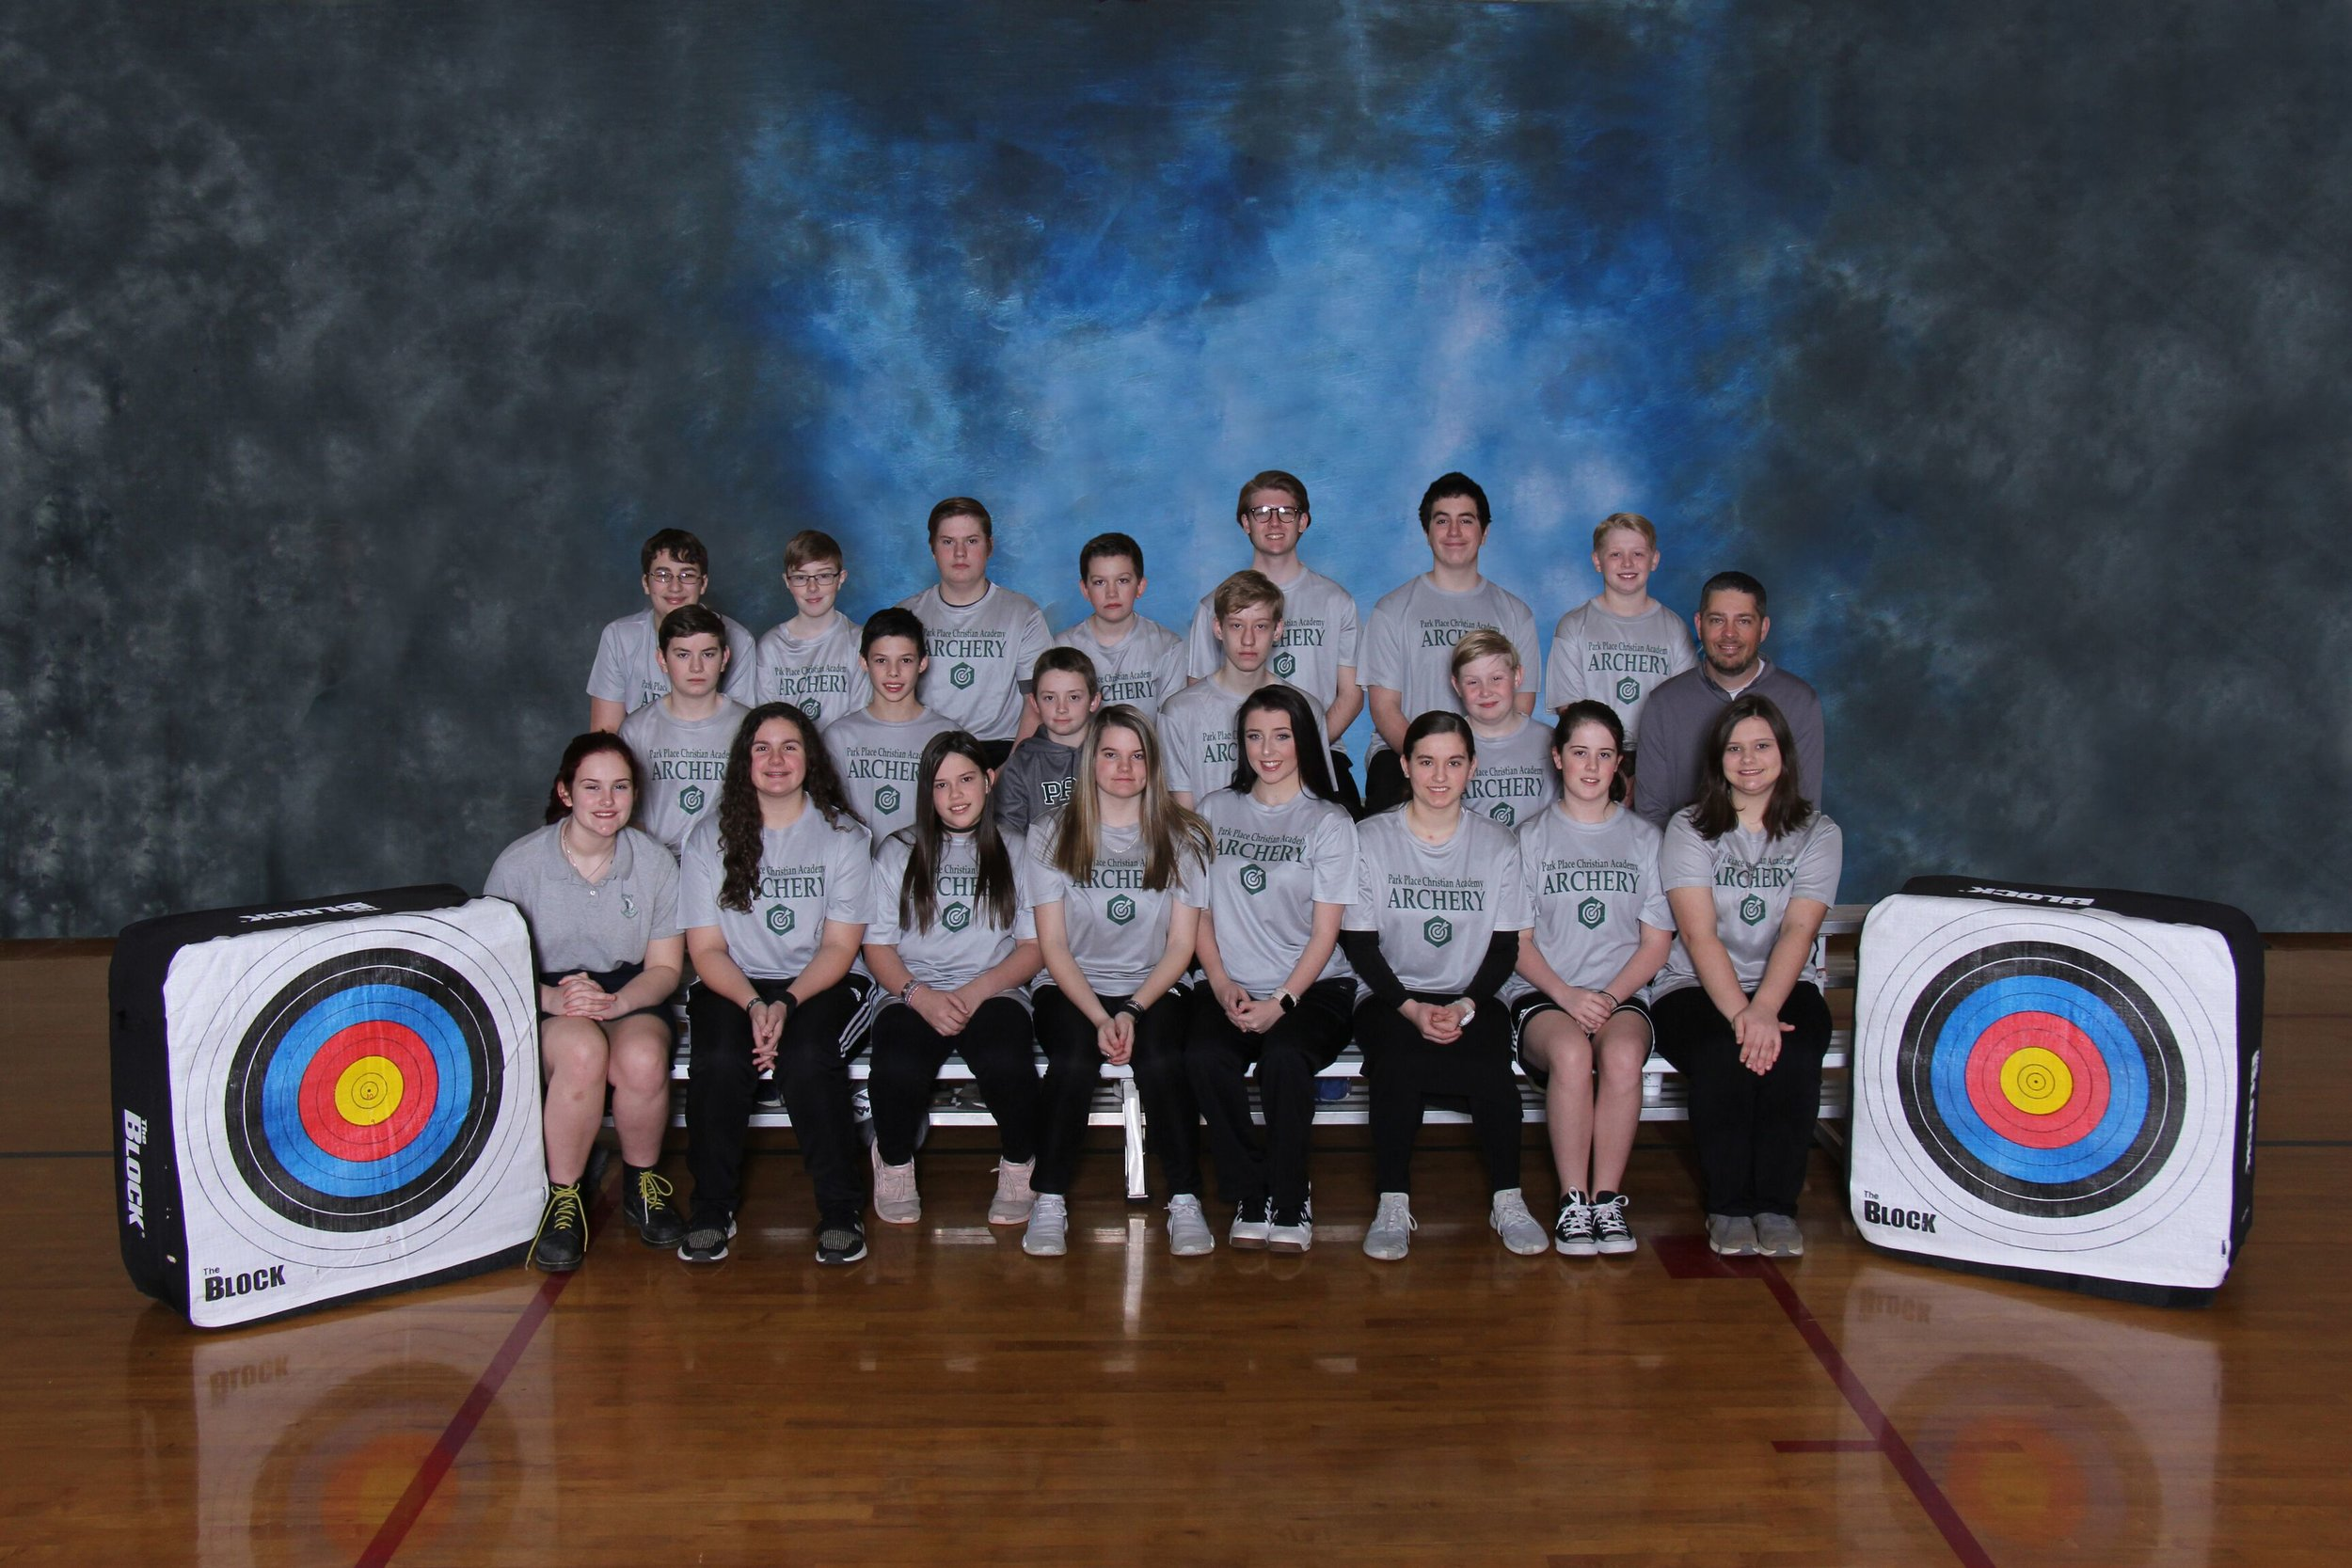 2019 7th-12th Grade Archery Team